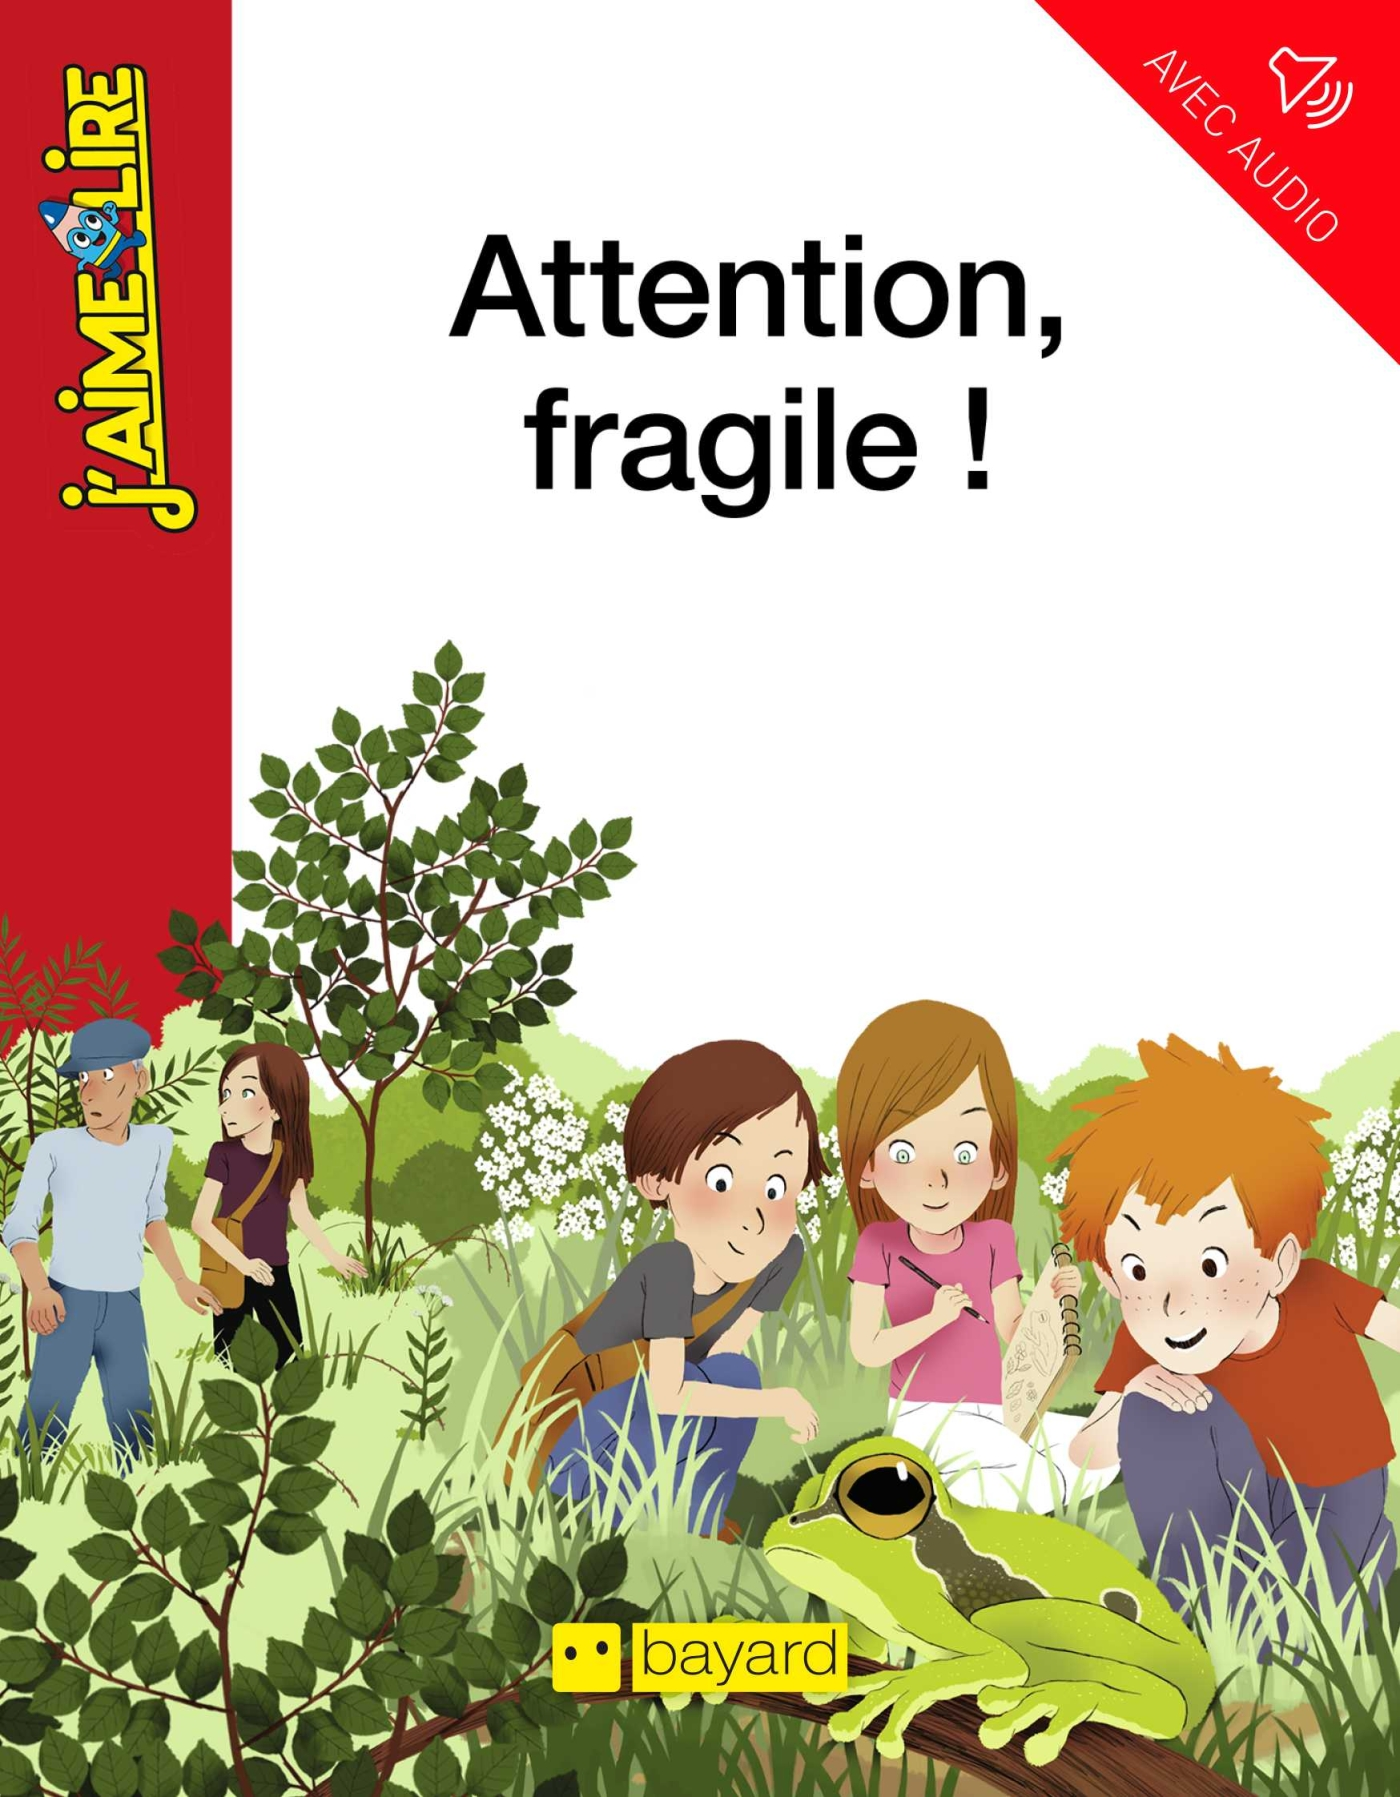 Attention, fragile !